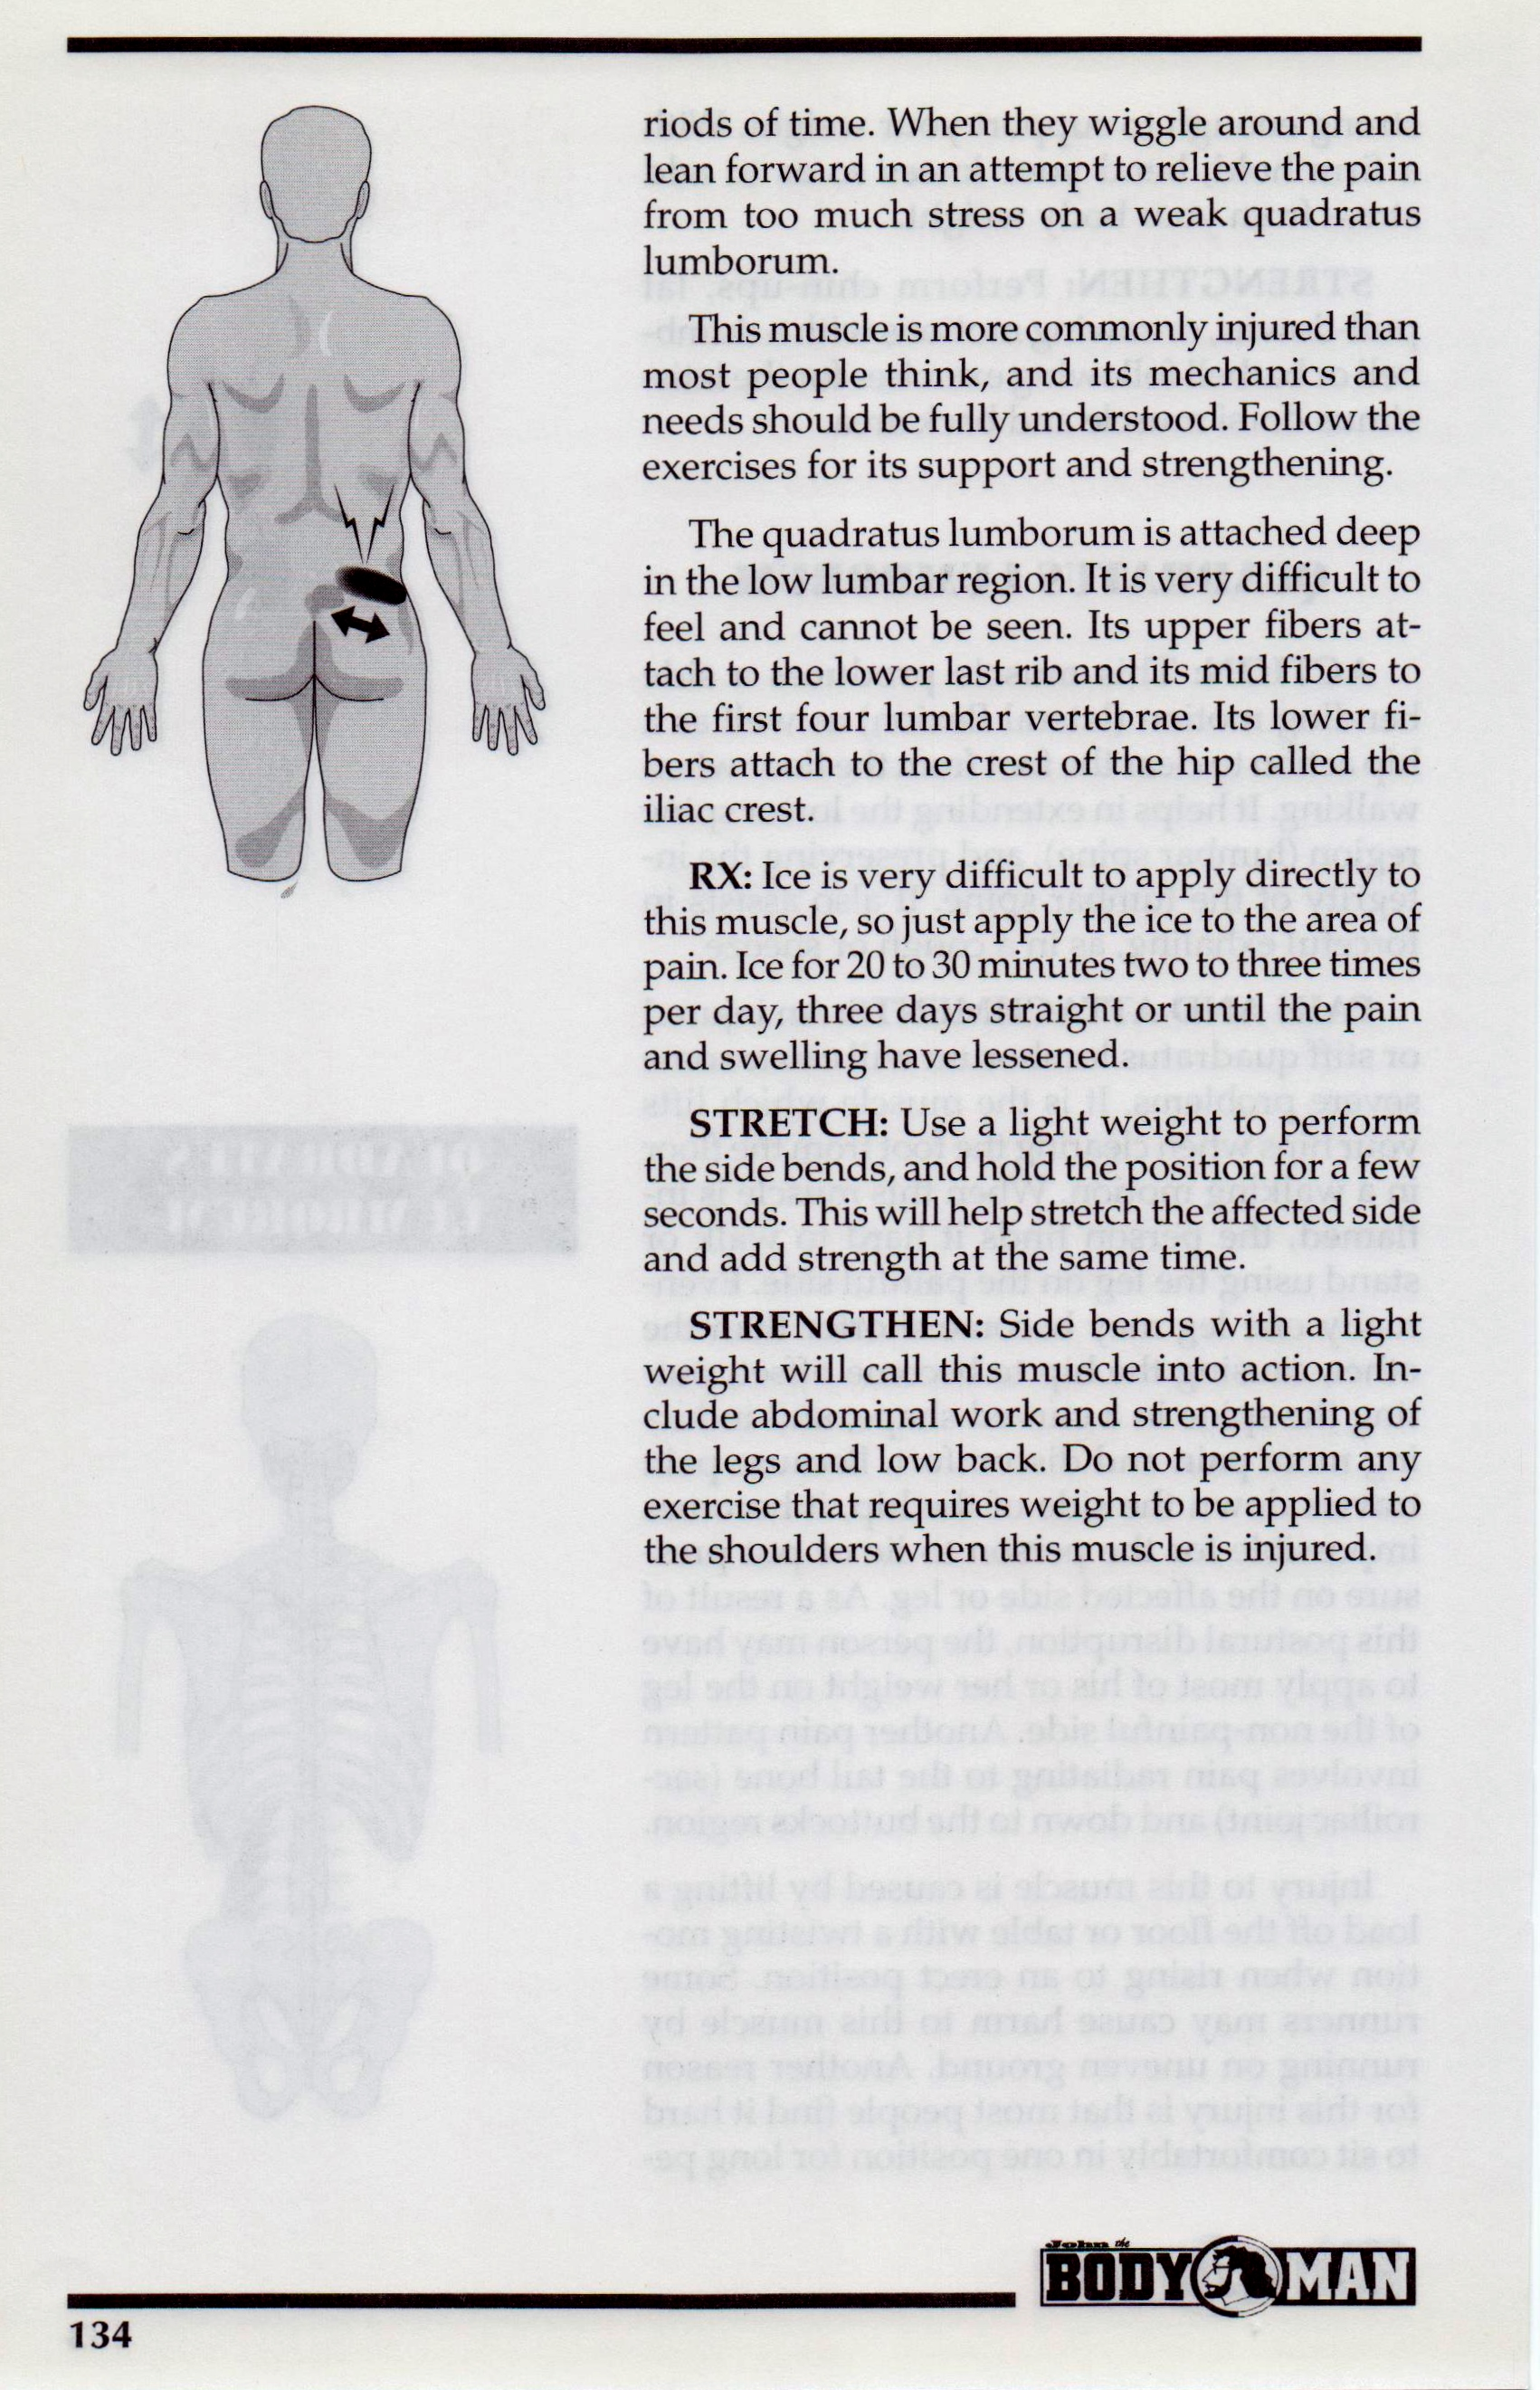 {Quadratus Lumborum P 134}